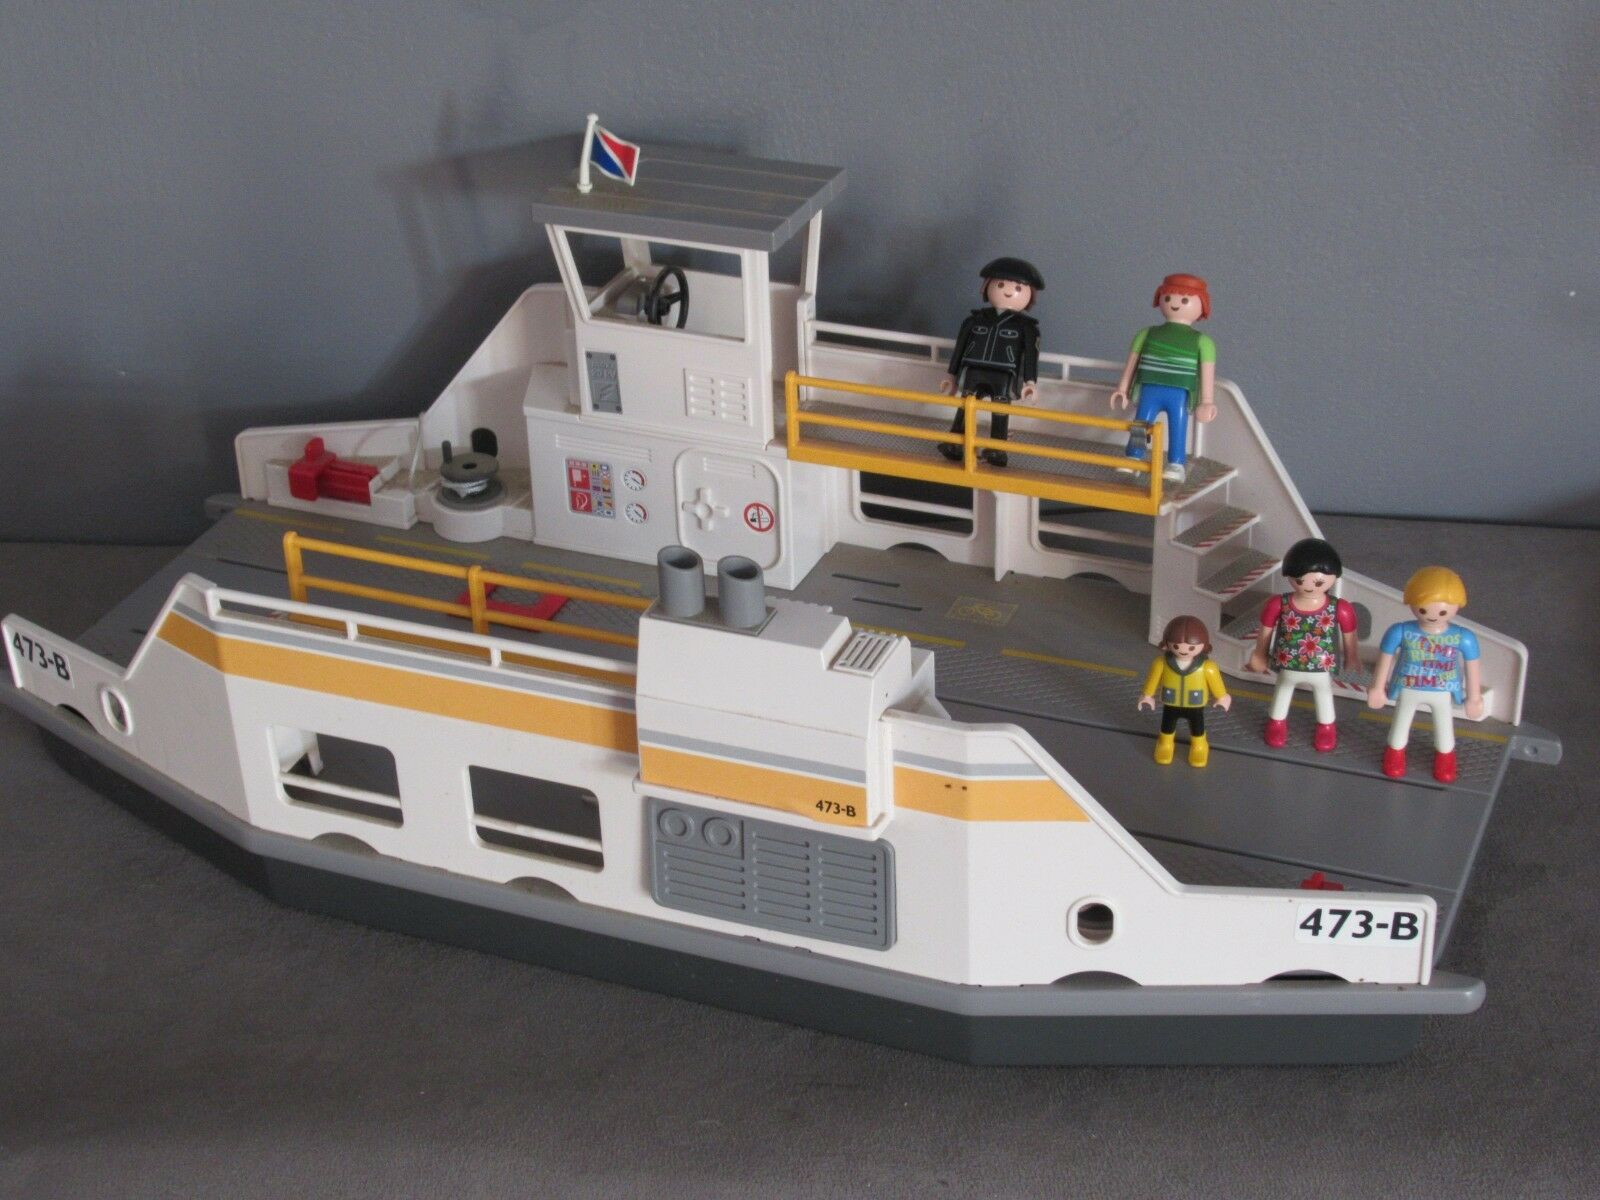 Playmobil 5127 Bateau Barge Bac plate-forme - 5 personnages